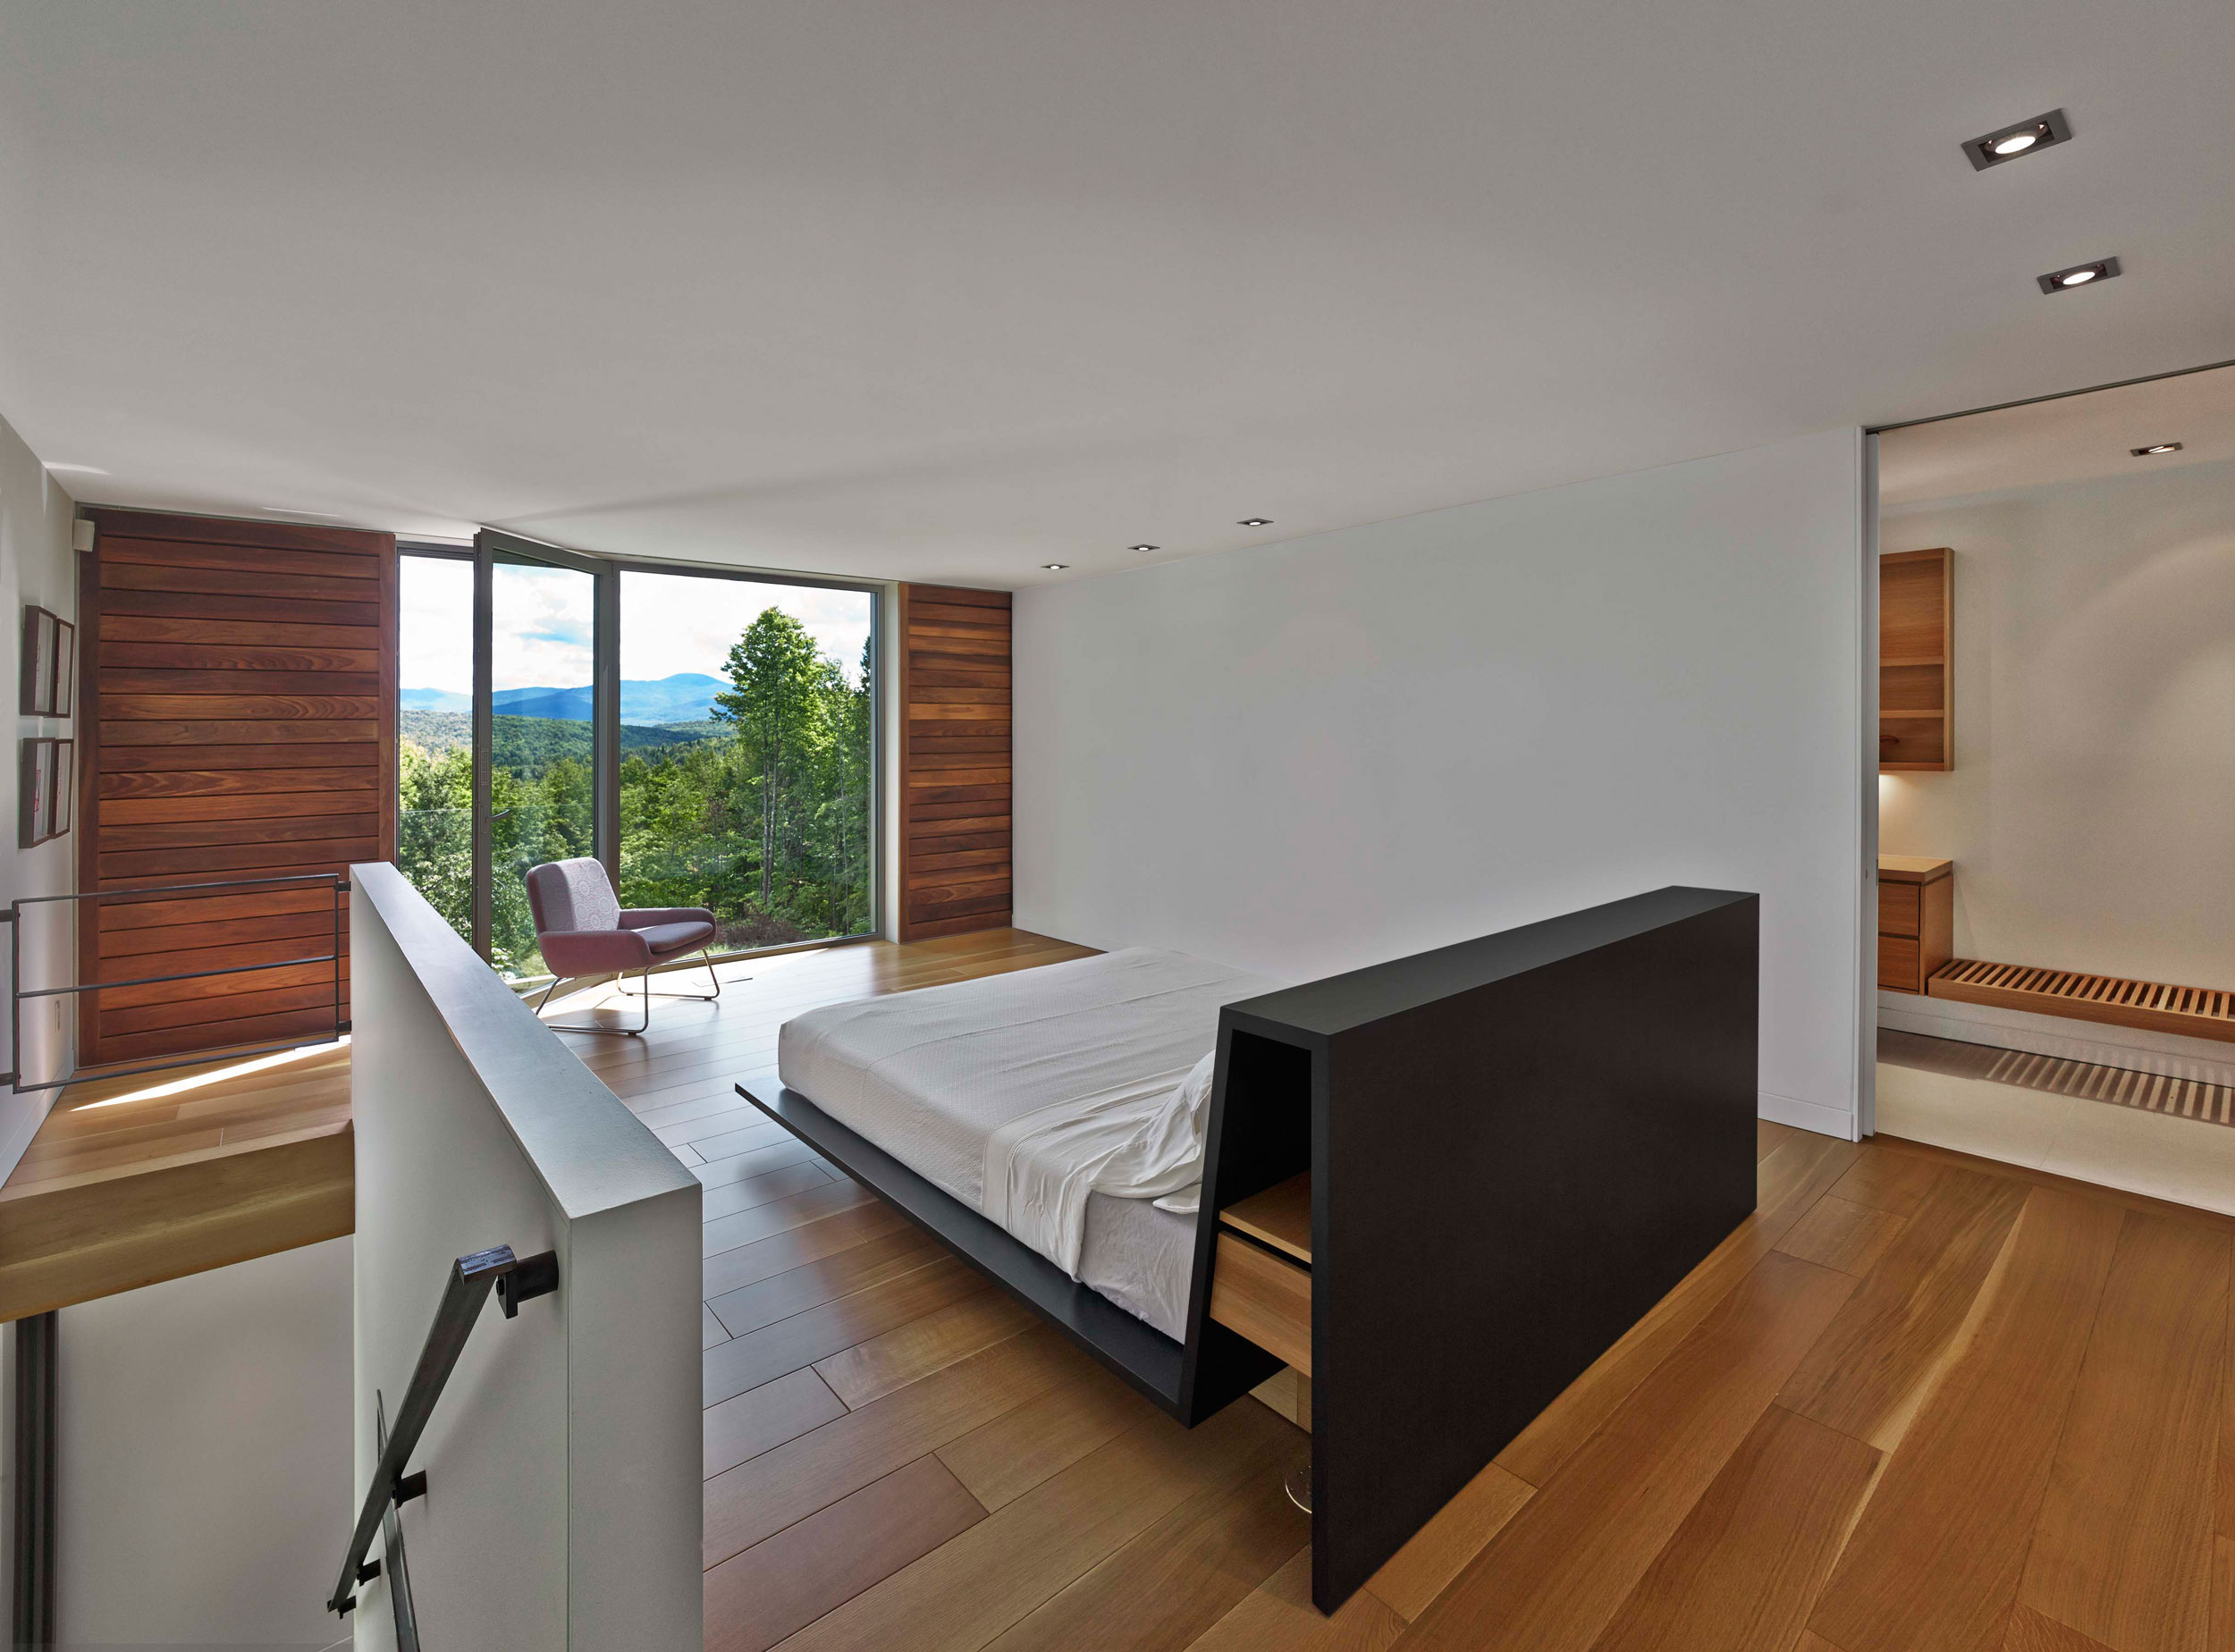 T House by Natalie Dionne Architecture (15)